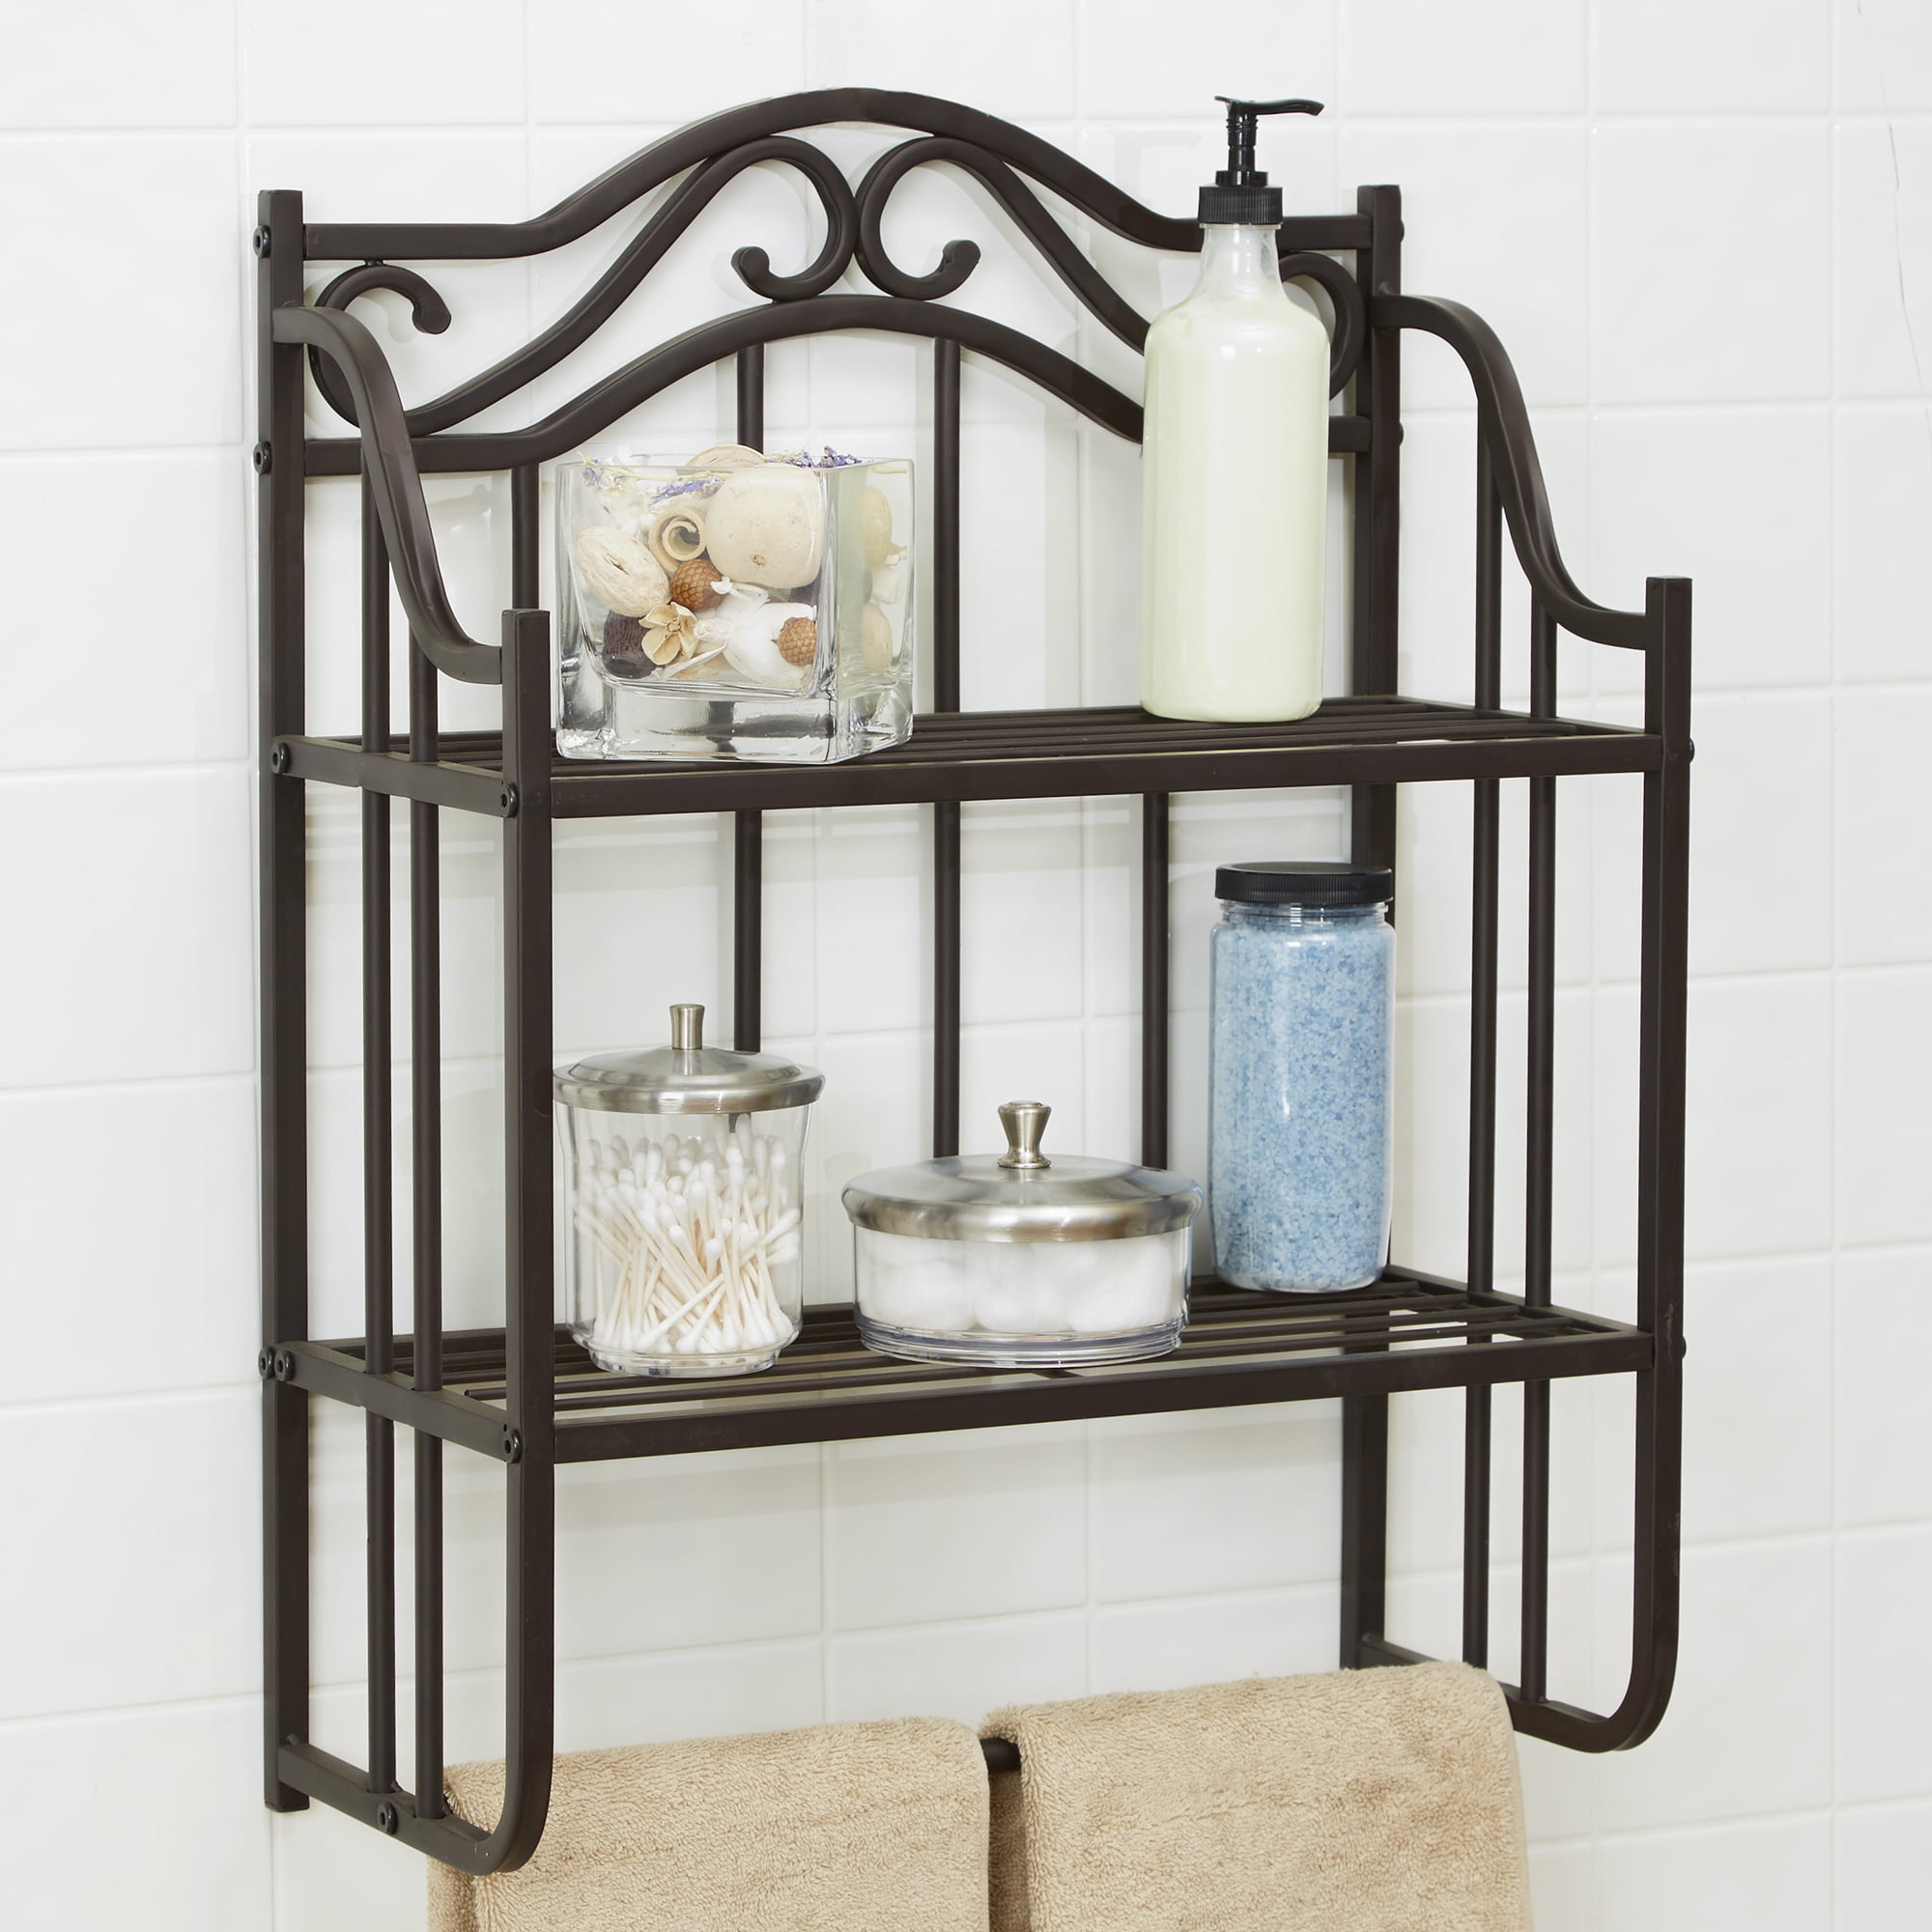 Charming Chapter Bathroom Storage Wall Shelf, Oil Rubbed Bronze Finish   Walmart.com